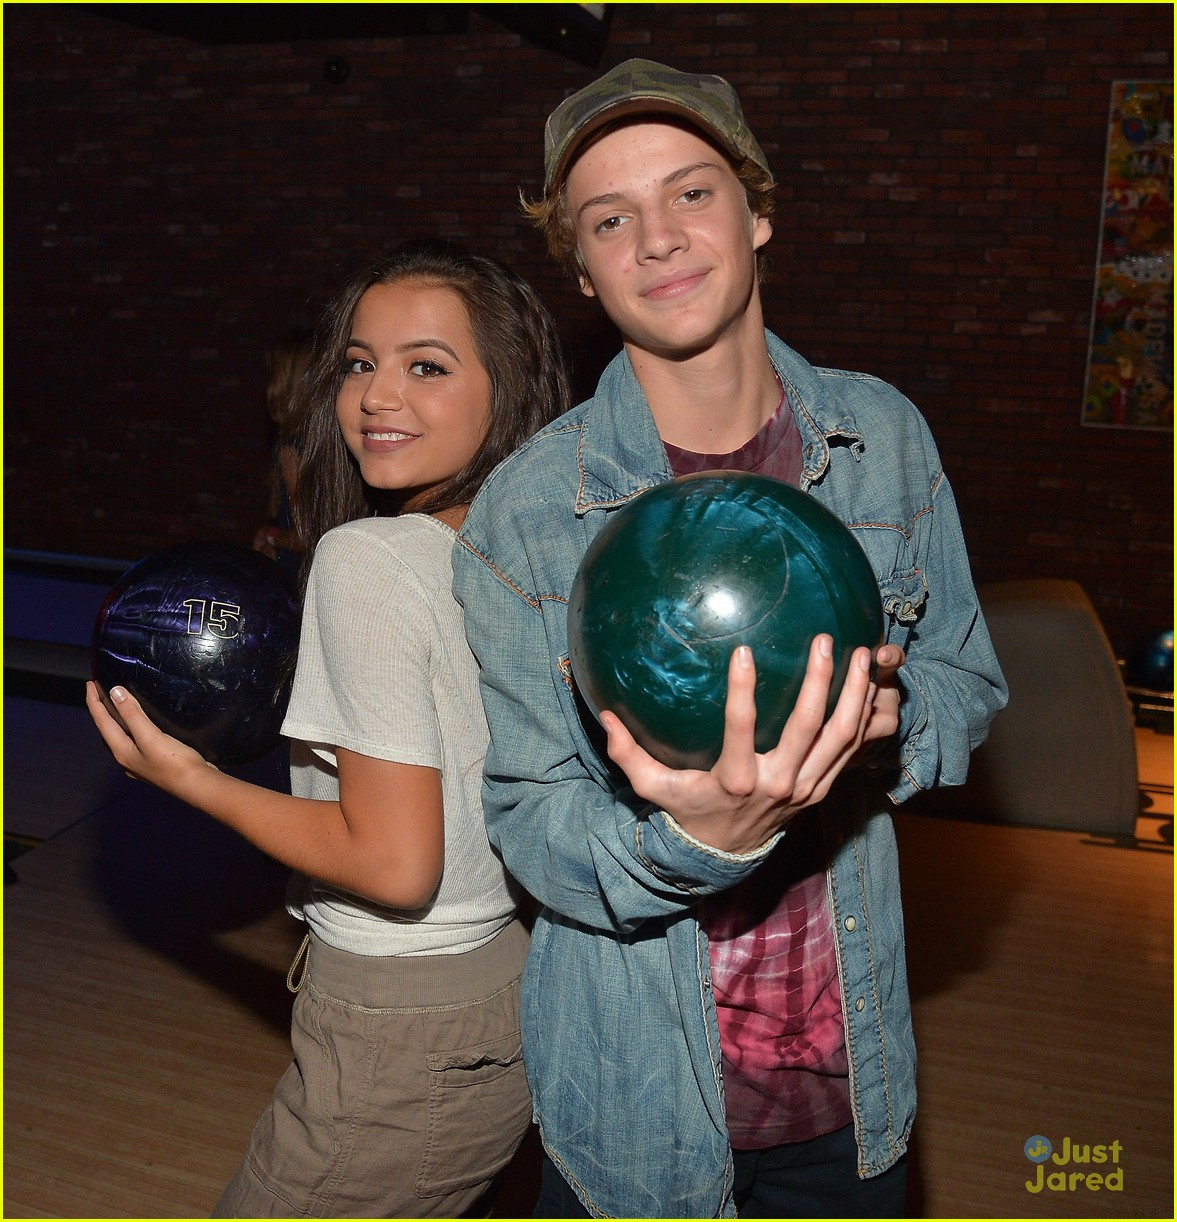 Breanna yde celebrates 13th birthday with school of rock cast breanna yde 13th party pics lvlten mag quote 21 altavistaventures Gallery